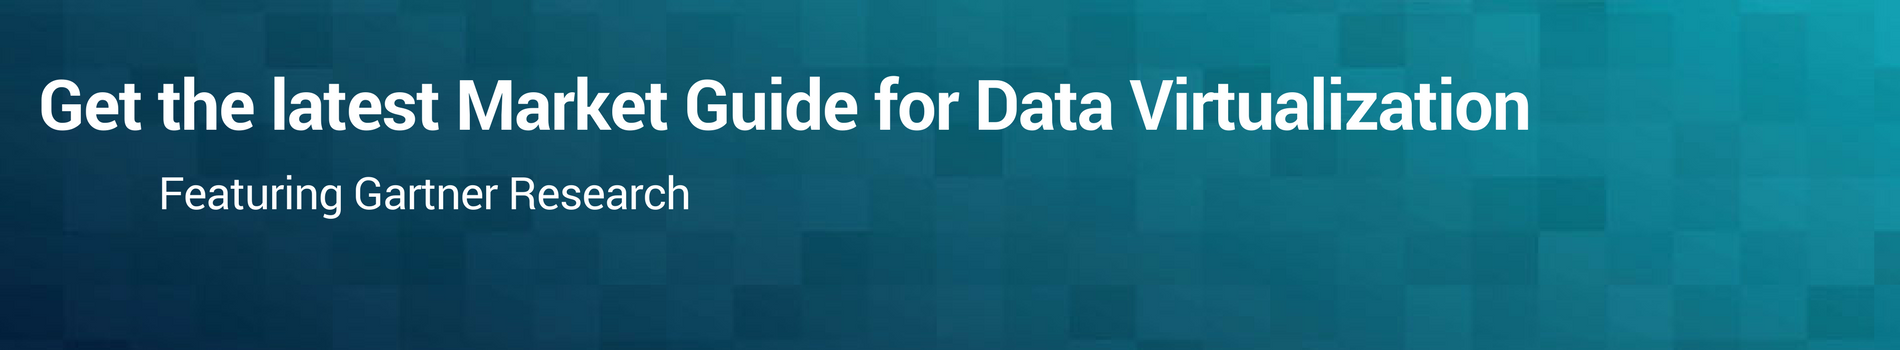 Get the latest Gartner Market Guide for Data Virtualization featuring Gartner Research.